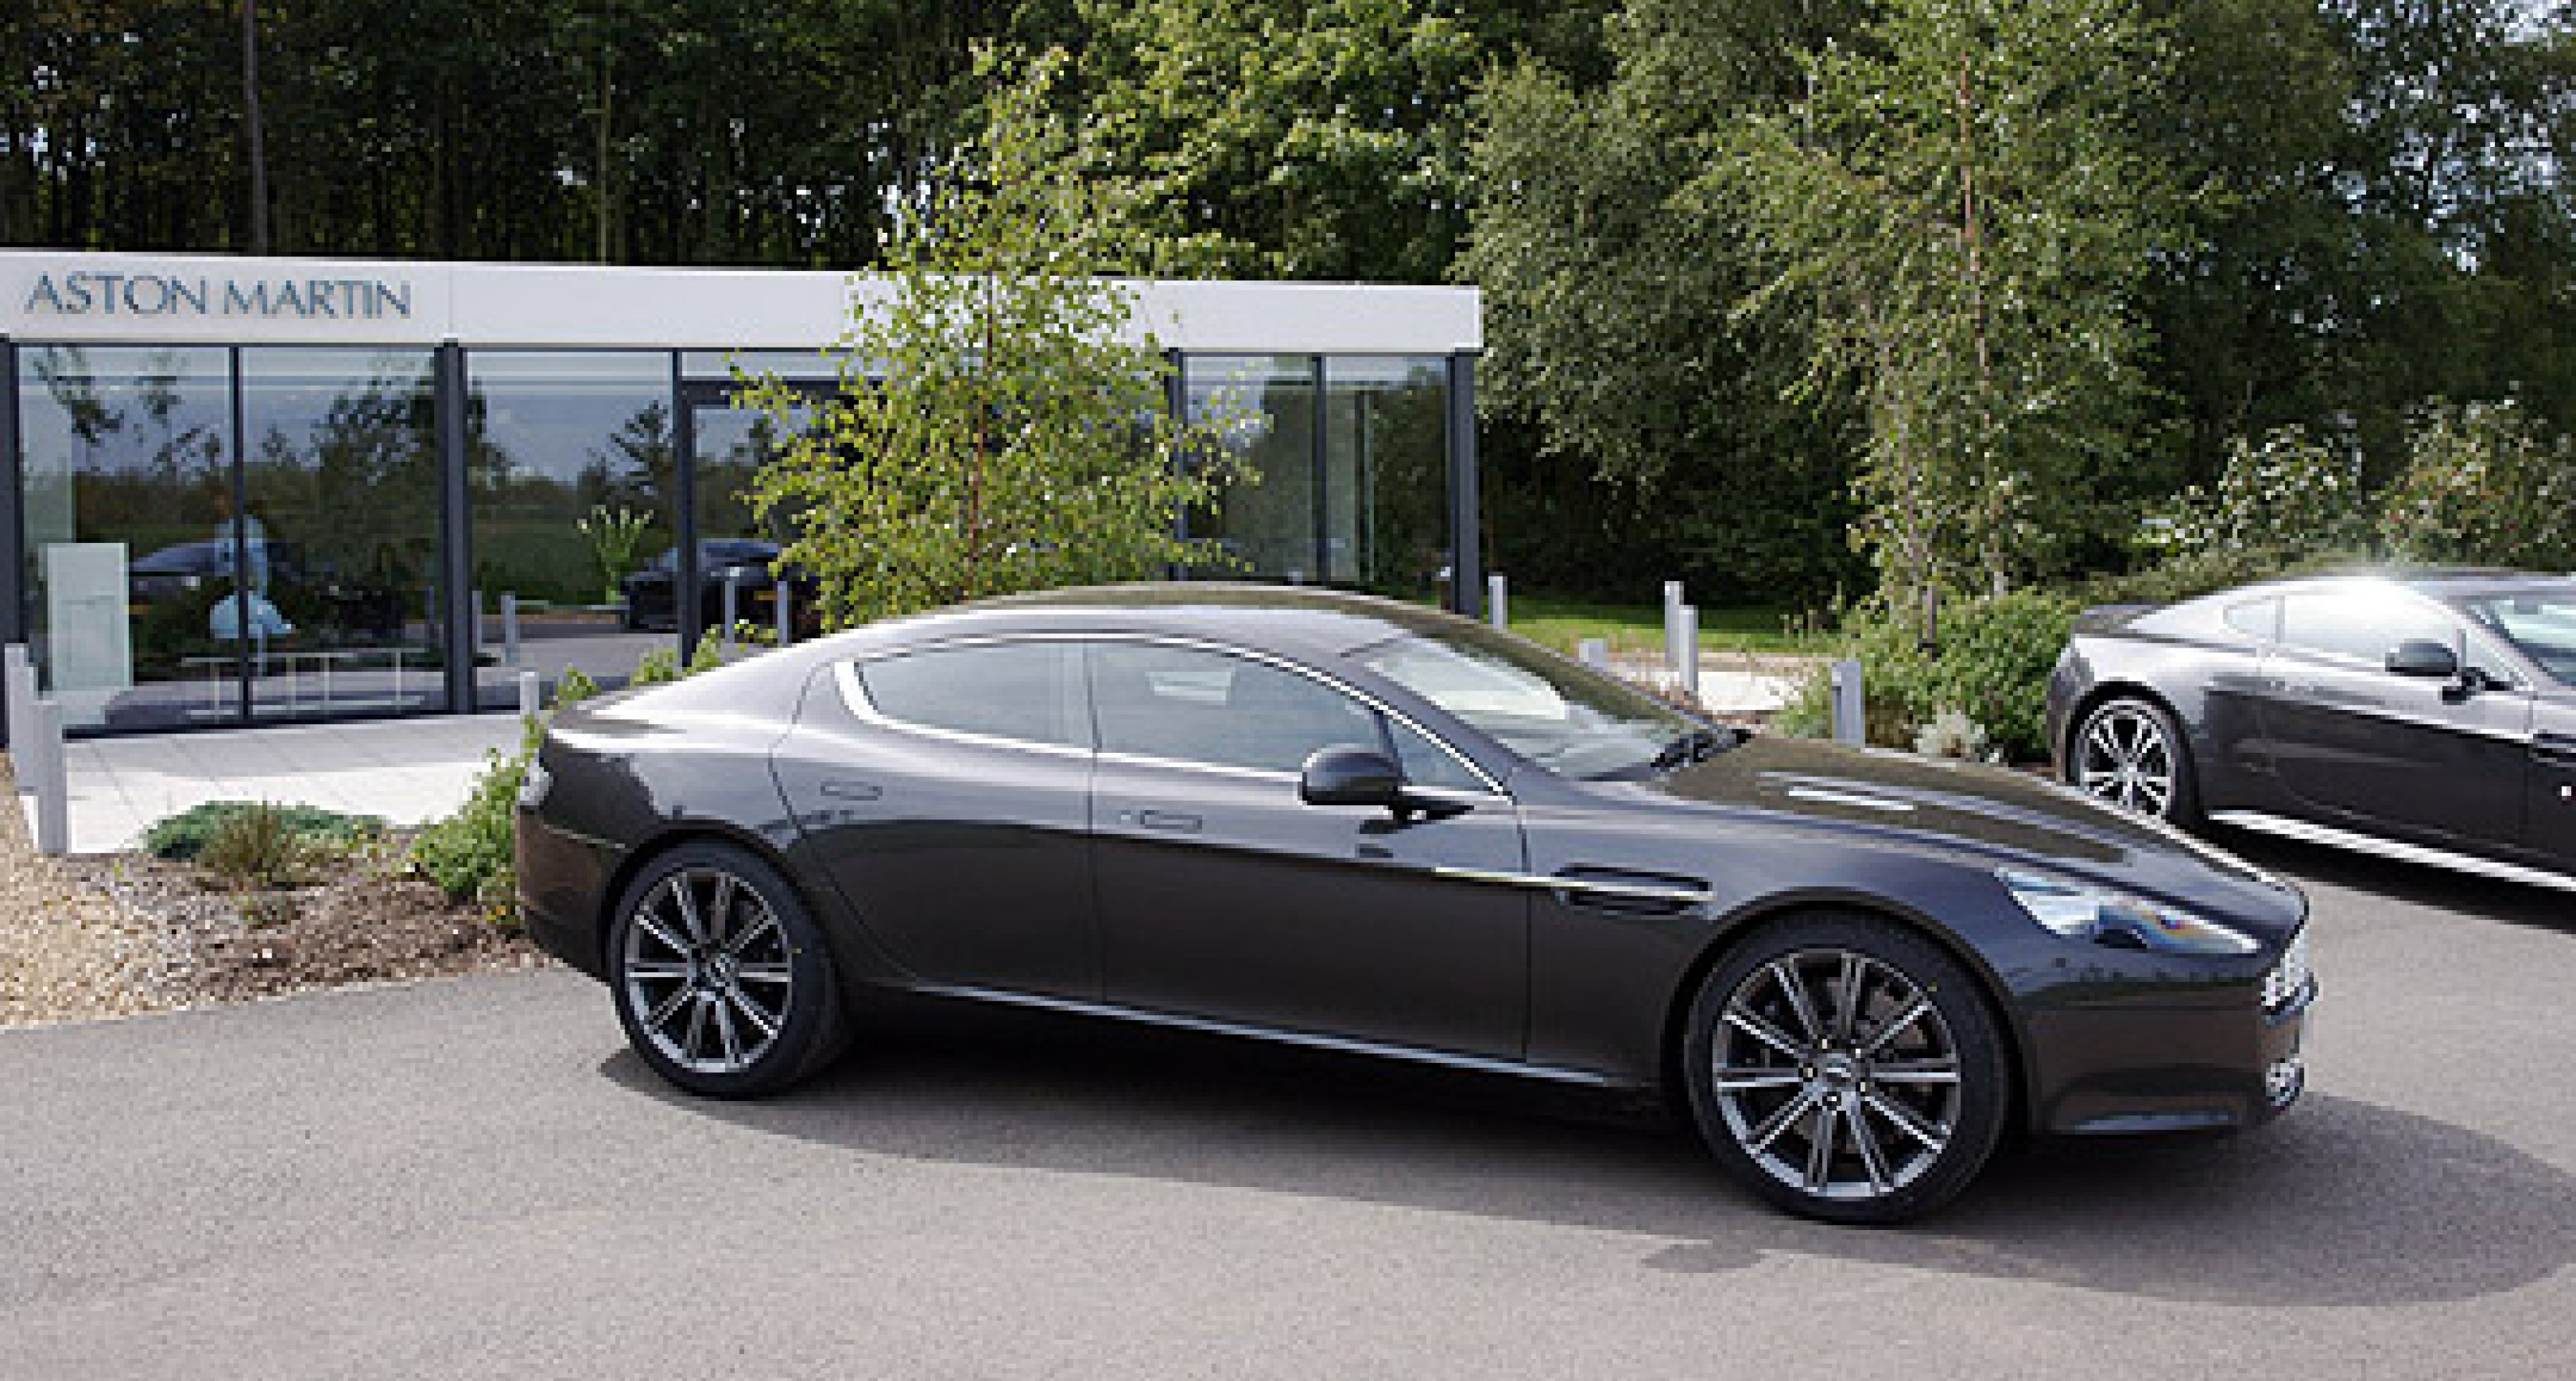 Aston Martins at Millbrook - Includes Video